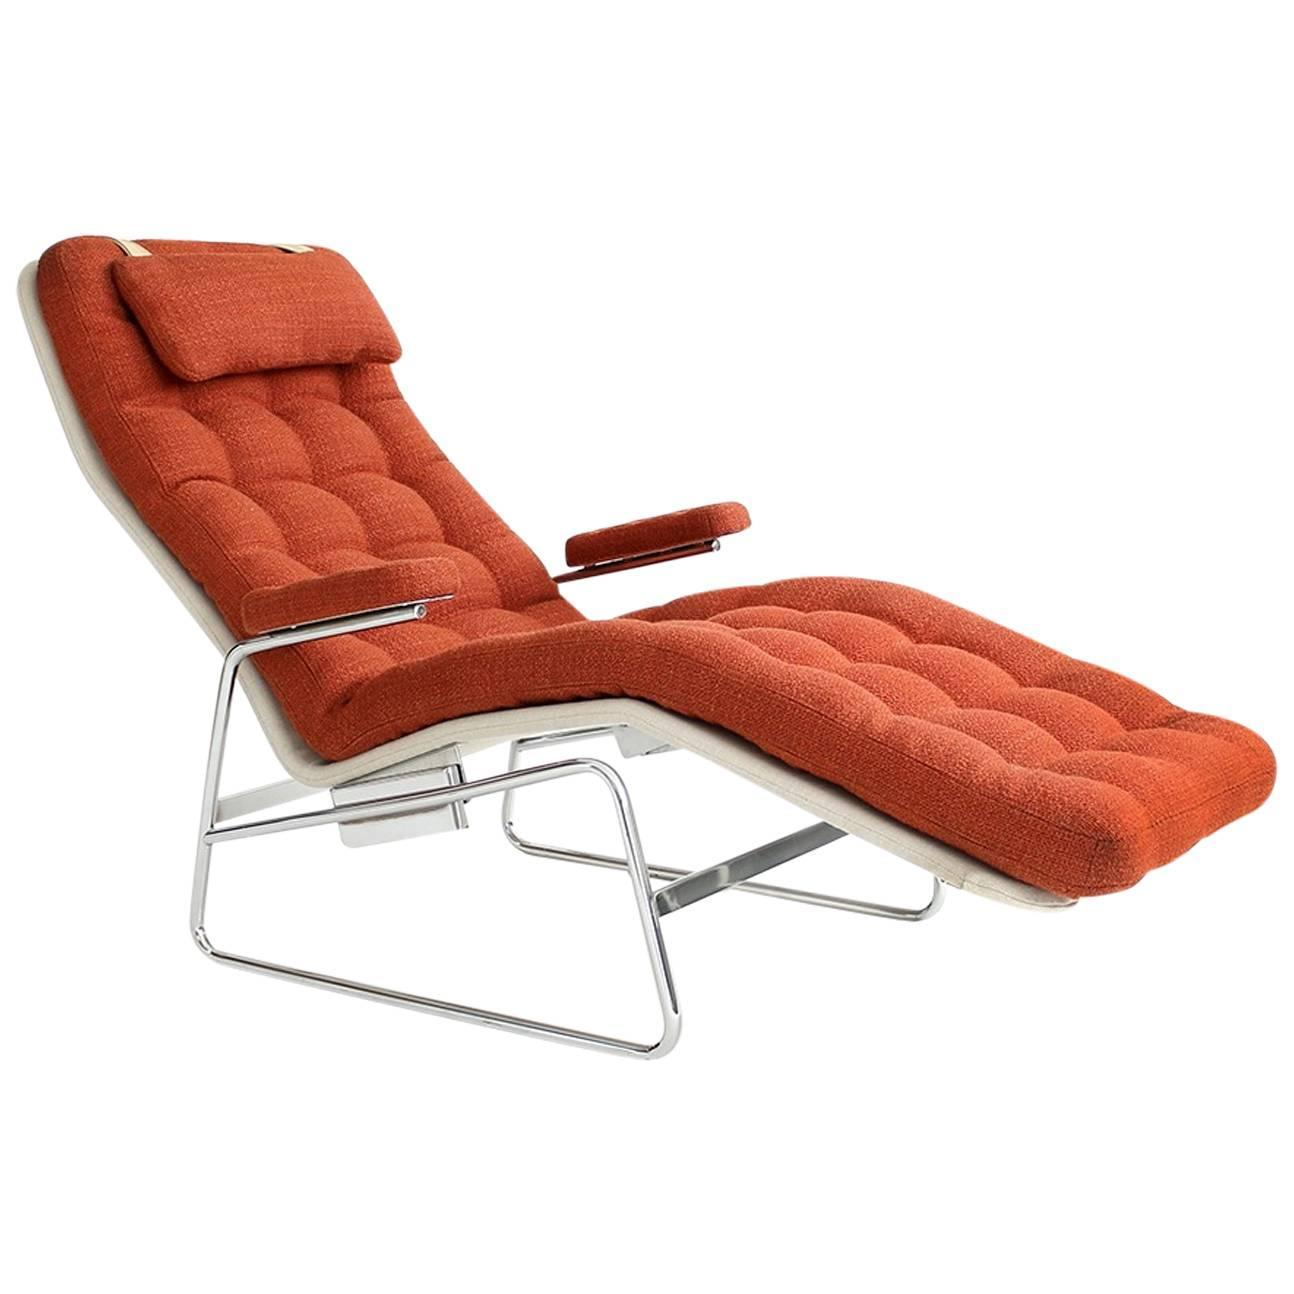 Awesome Sam Larsson U0027Fenixu0027 Reclining Lounge Chair By DUX For Sale At 1stdibs